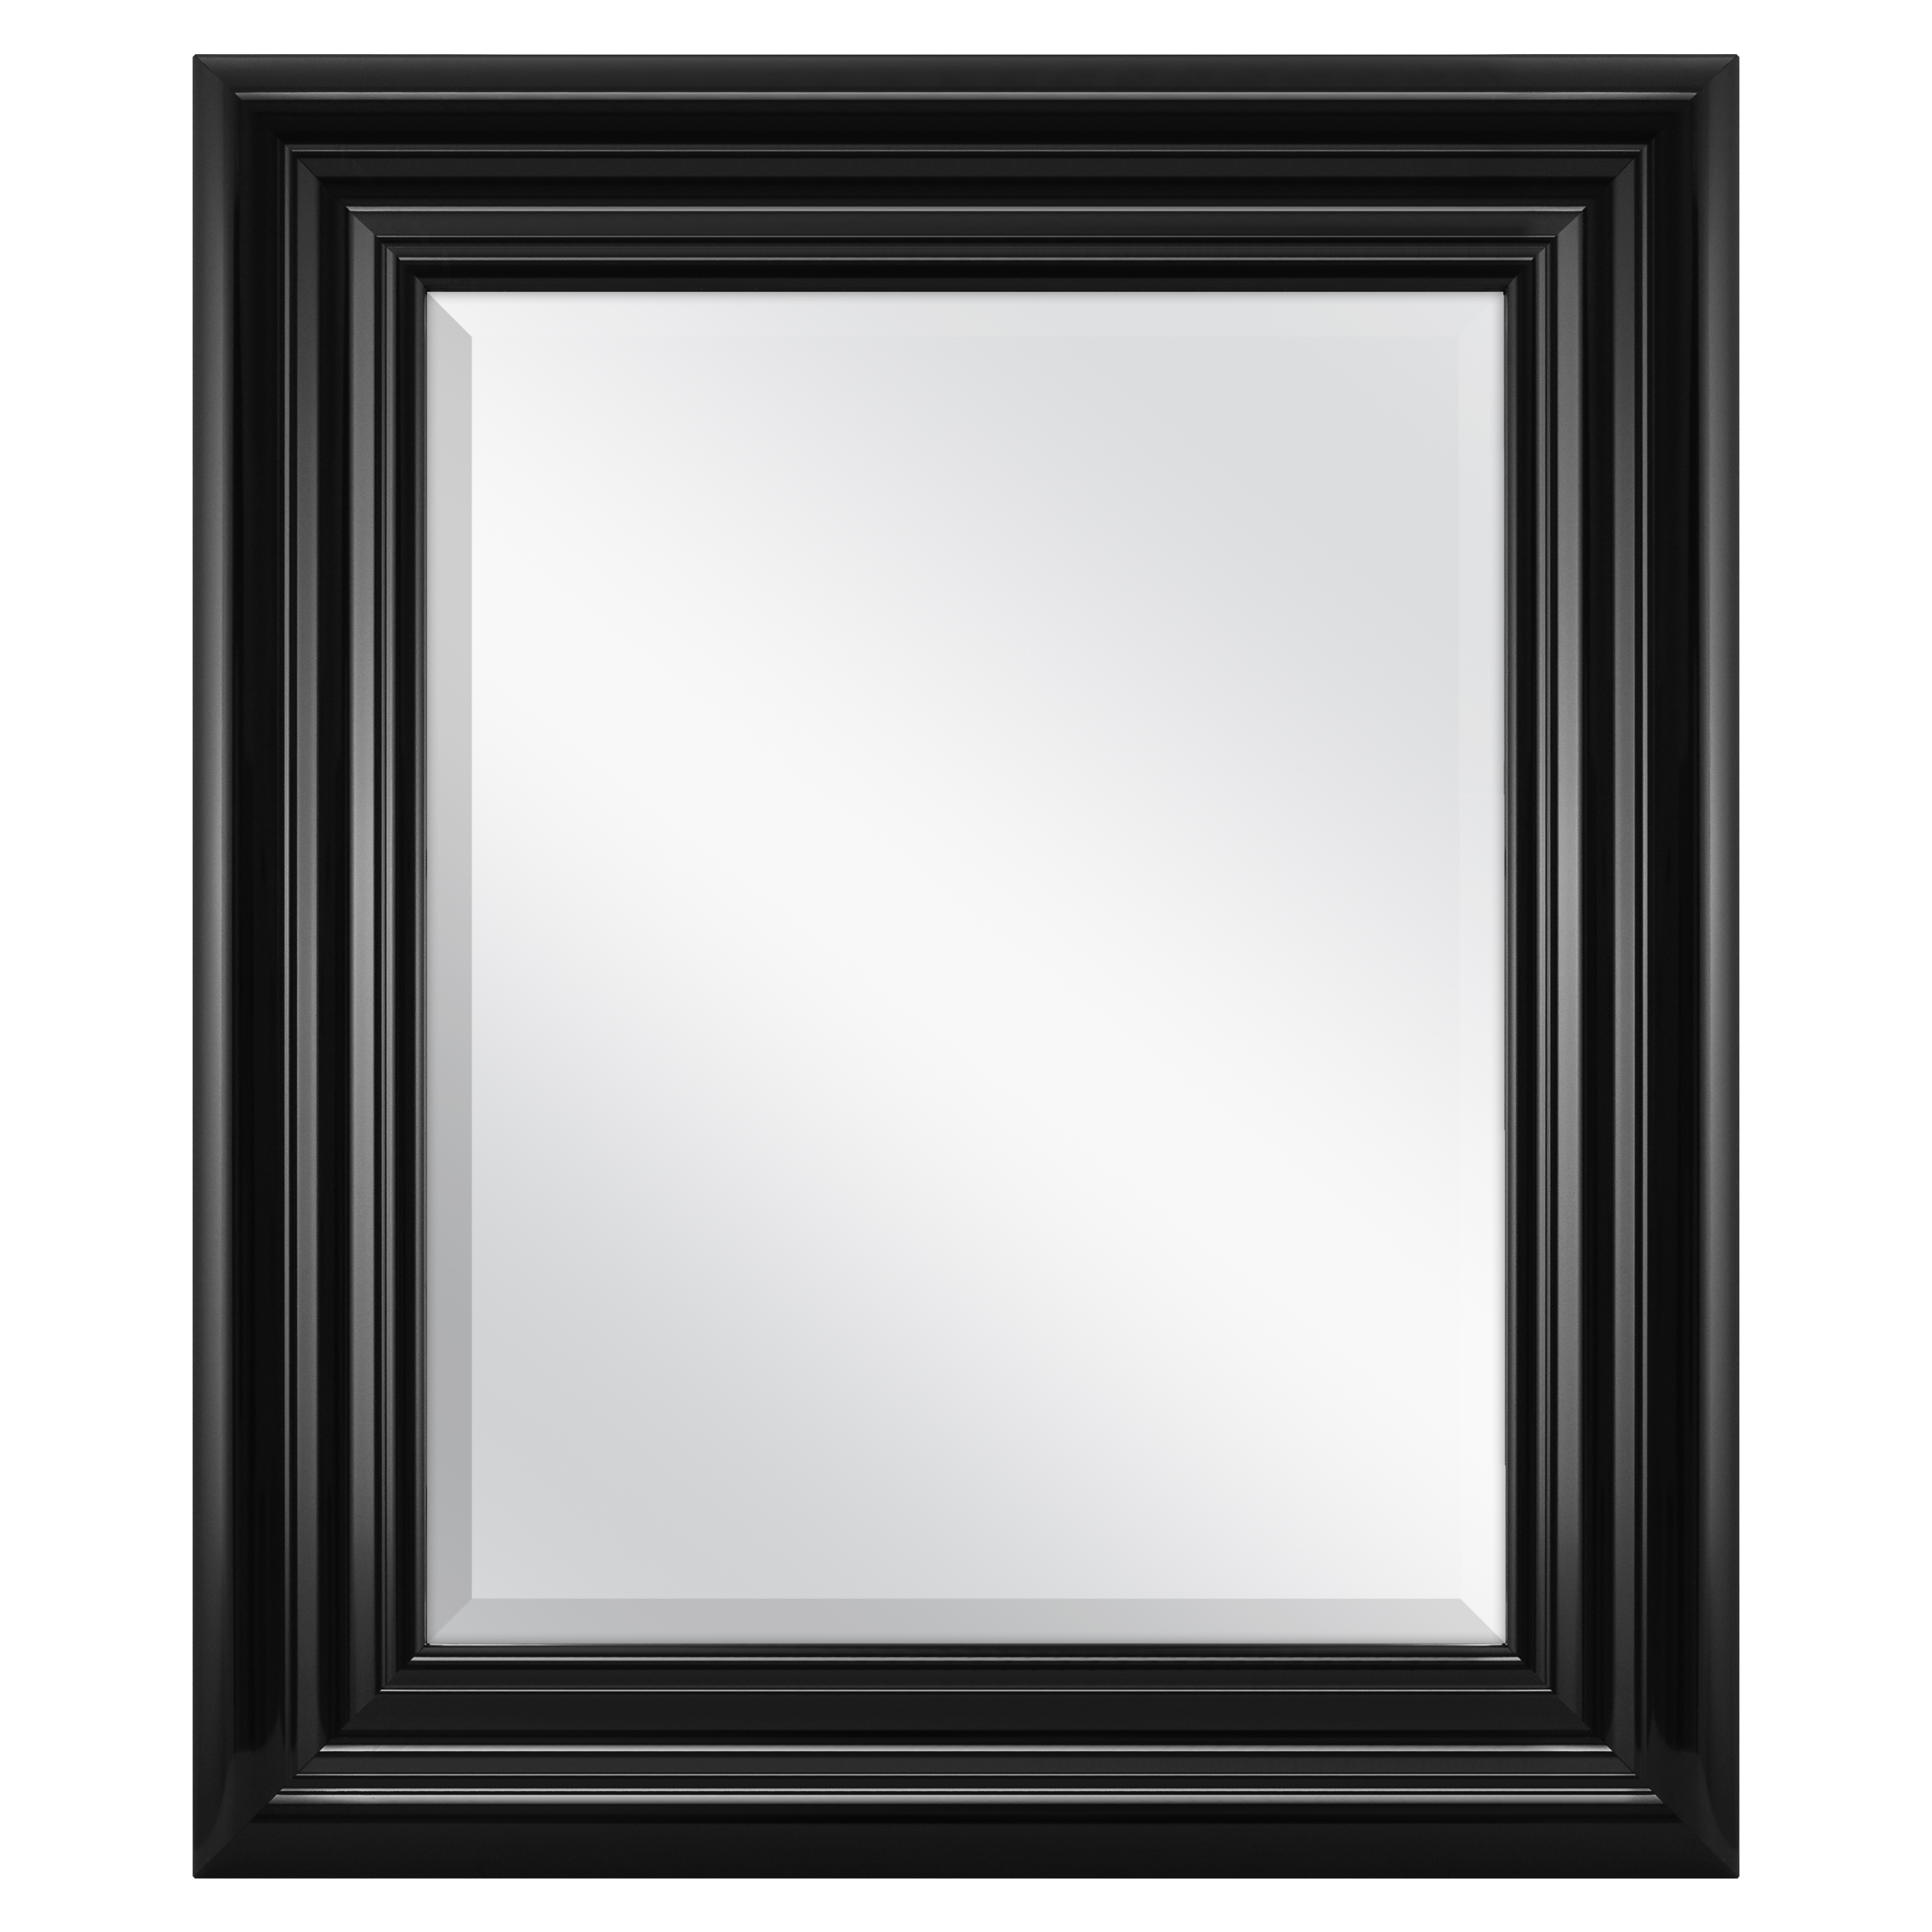 Better Homes & Gardens Beveled Wall Mirror, 23'' x 27'', Available in Black or White